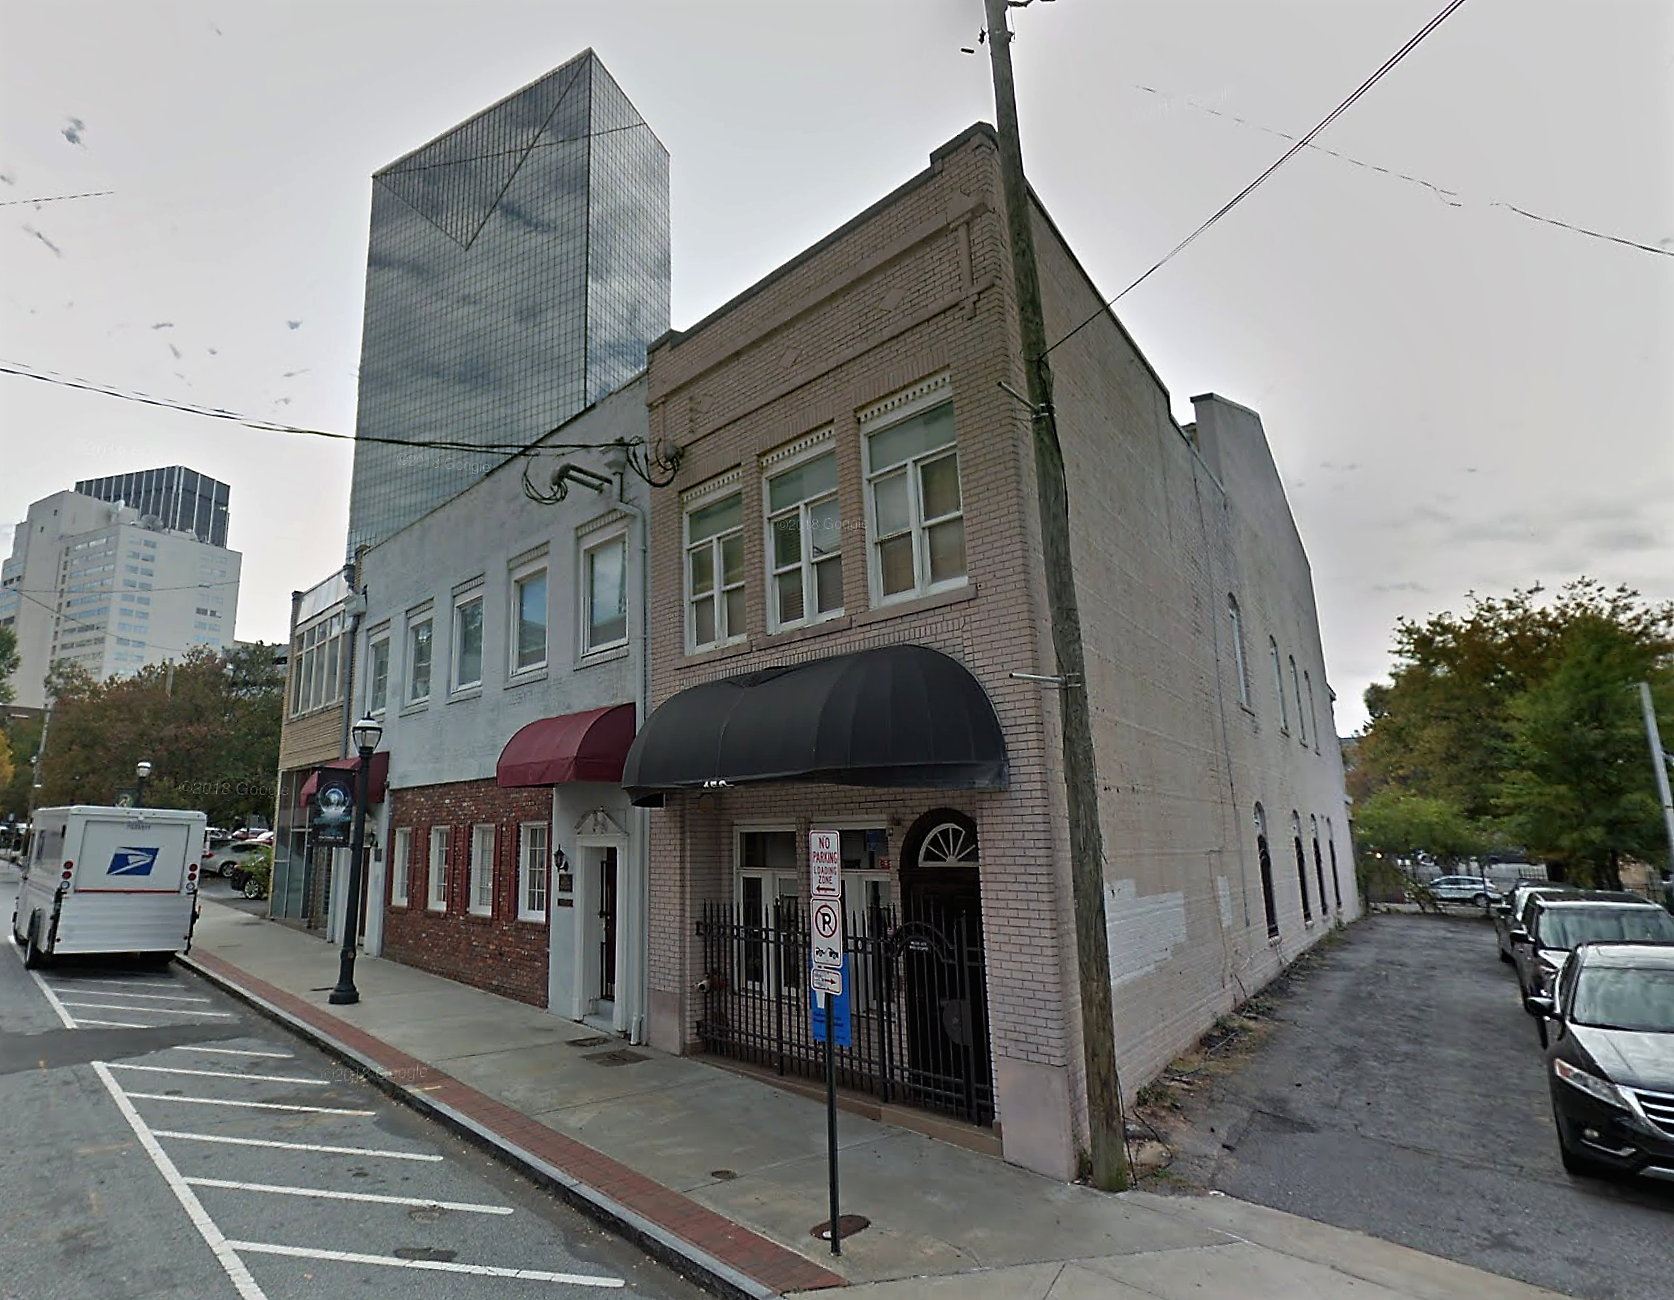 Preservationist group calls to halt demolition of historic downtown recording studio